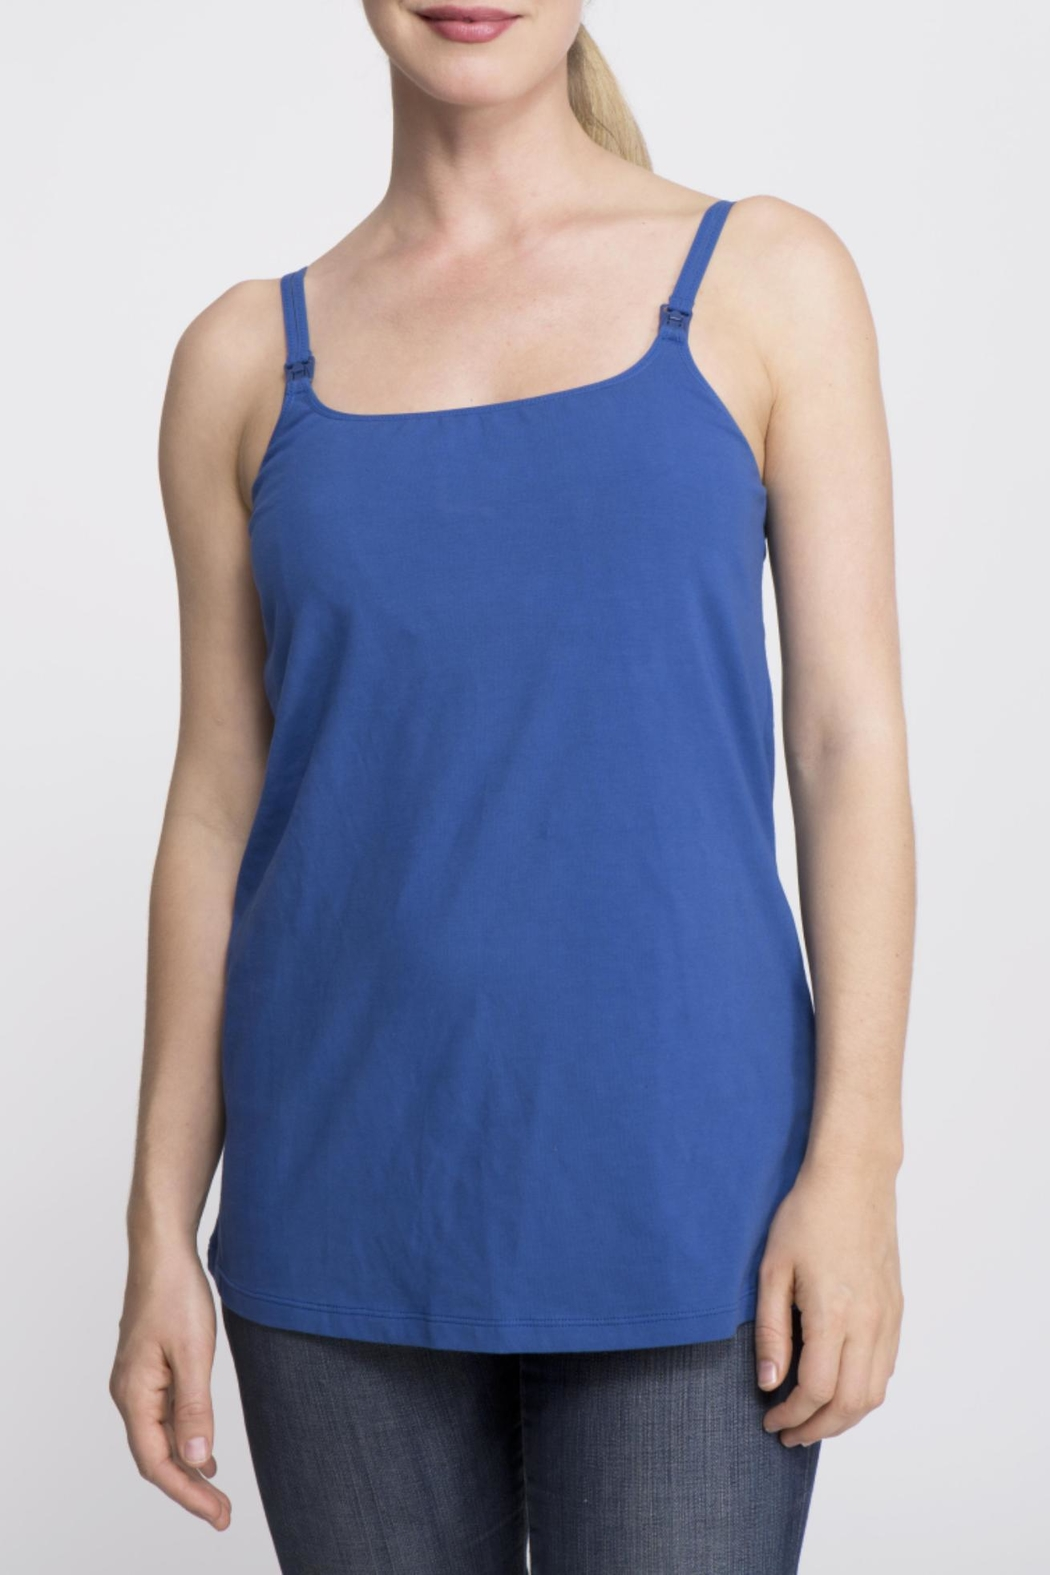 La Leche League International Casual Sleeveless Nursing Top - Front Cropped Image